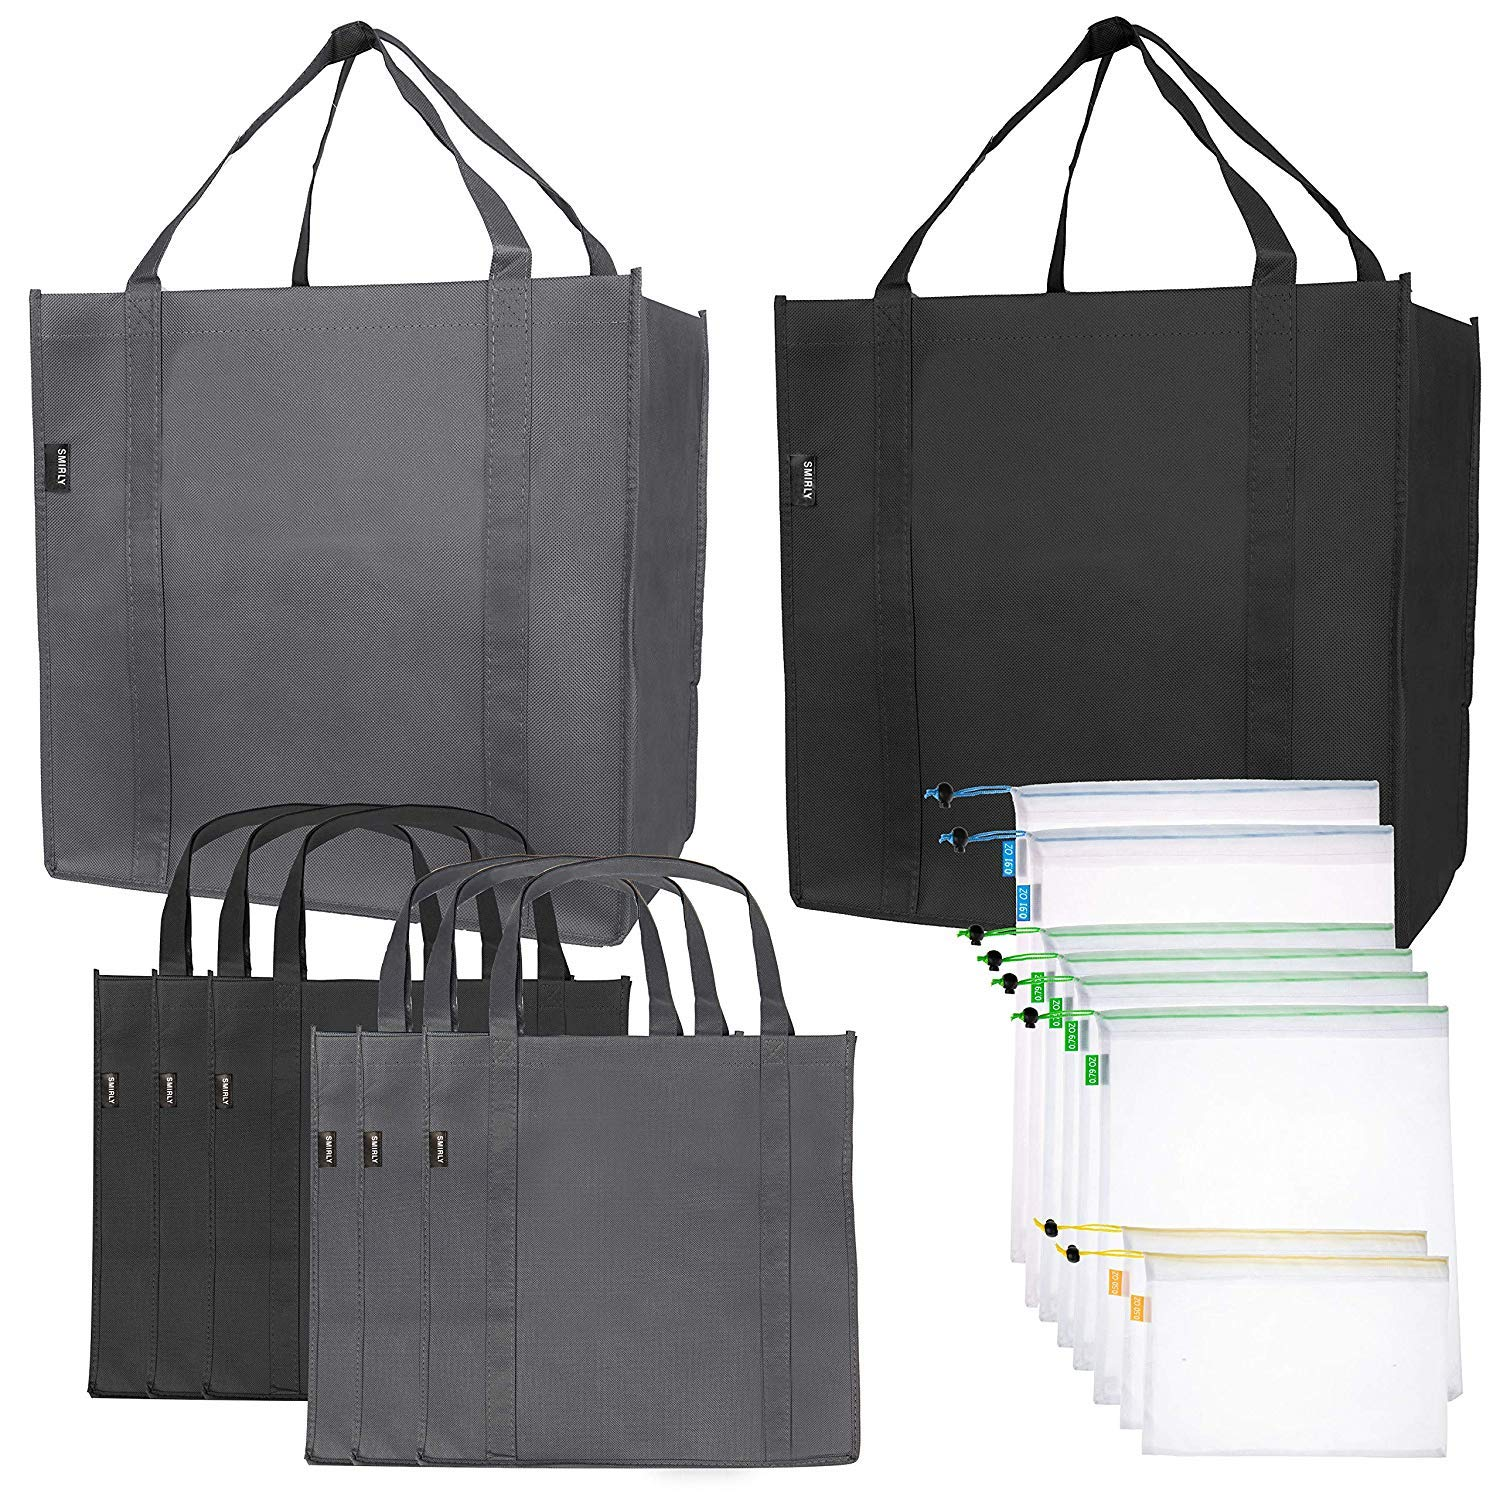 Reusable Folding Grocery and Produce Bags: 6 Large Fabric Totes with Handles and Inner Pocket and 9 Eco Friendly Breathable Mesh Produce Bags - Foldable Cloth Shopping Tote and Mesh Bag Set - 15 Pack by SMIRLY